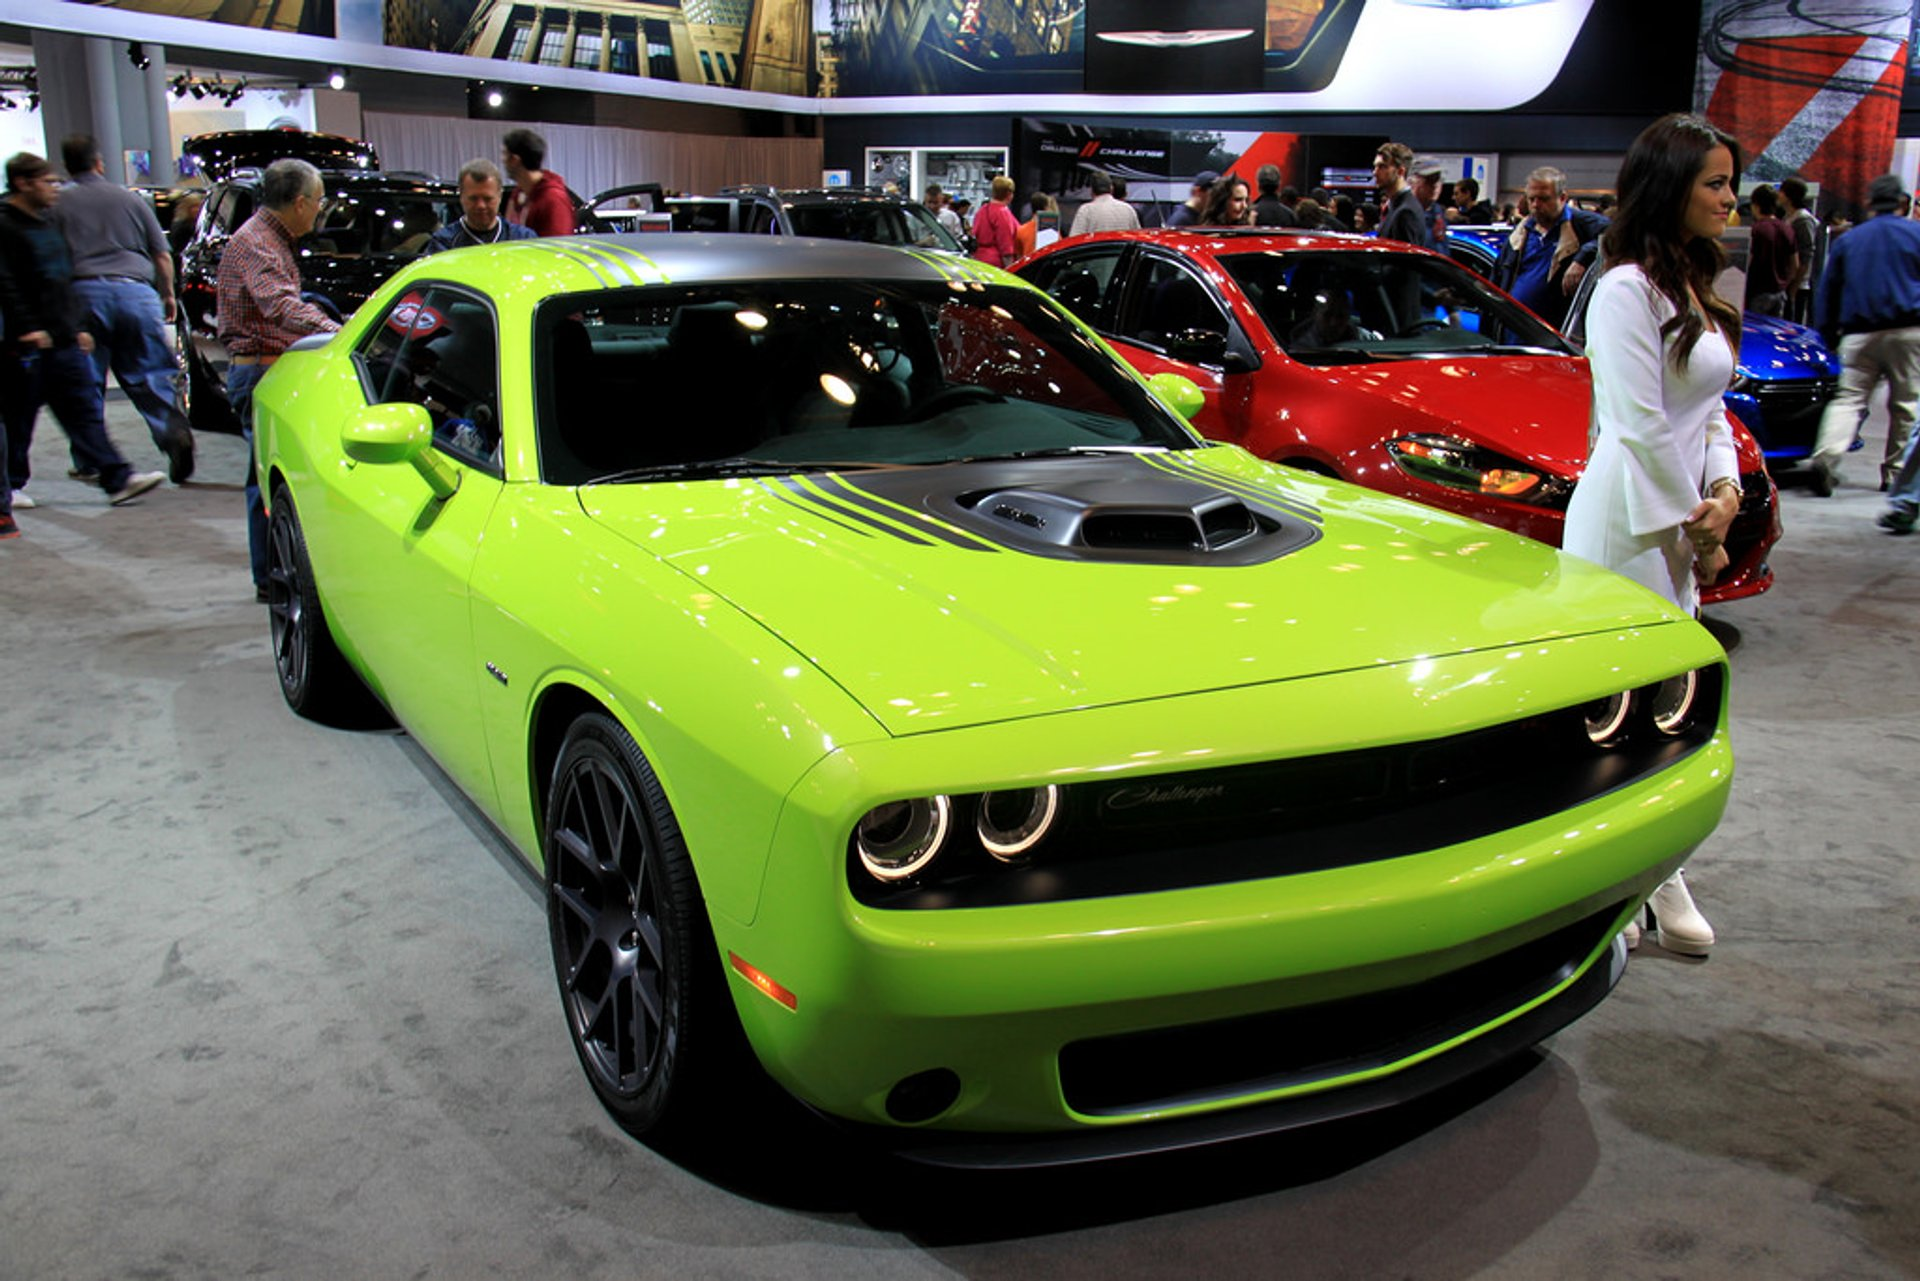 Dodge Challenger at the 2014 New York International Auto Show 2020